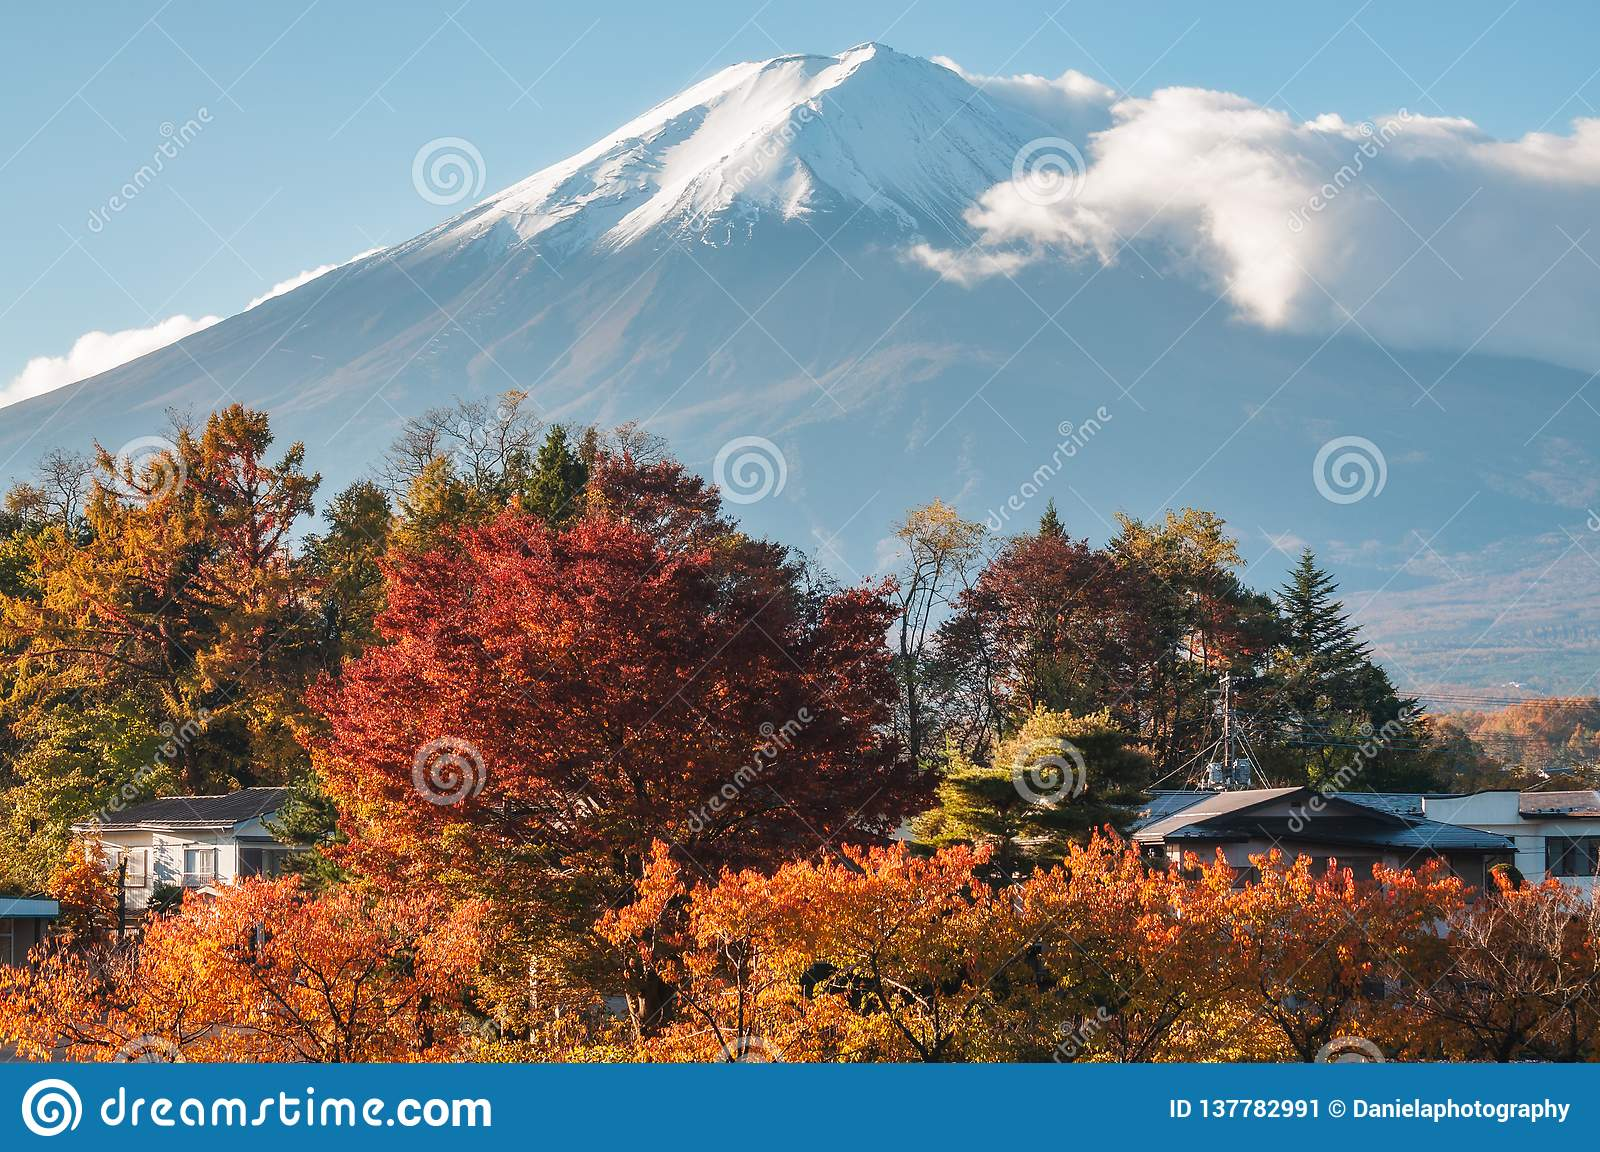 Mount Fuji View in Autumn from a resort in Japan